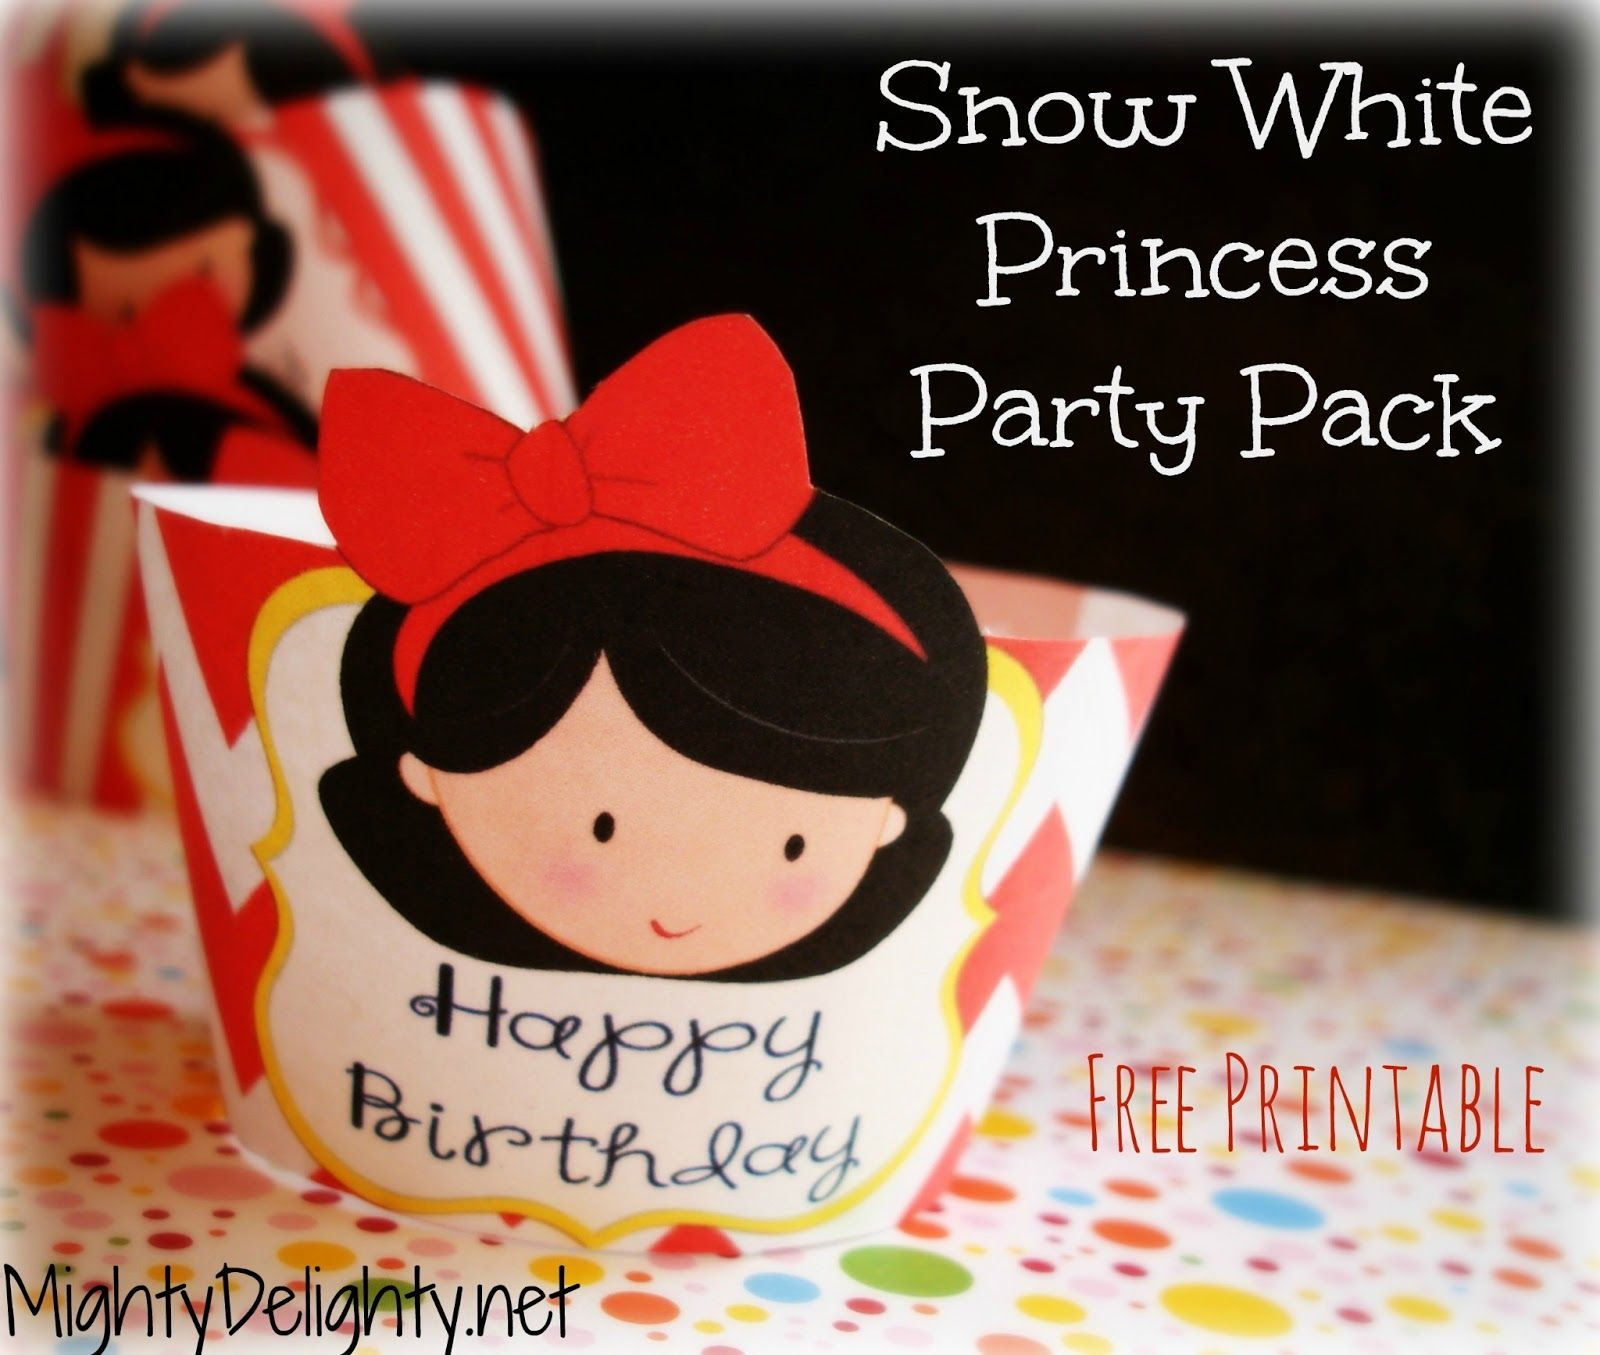 disney princess party invitation templates%0A sentimental letters of resignation